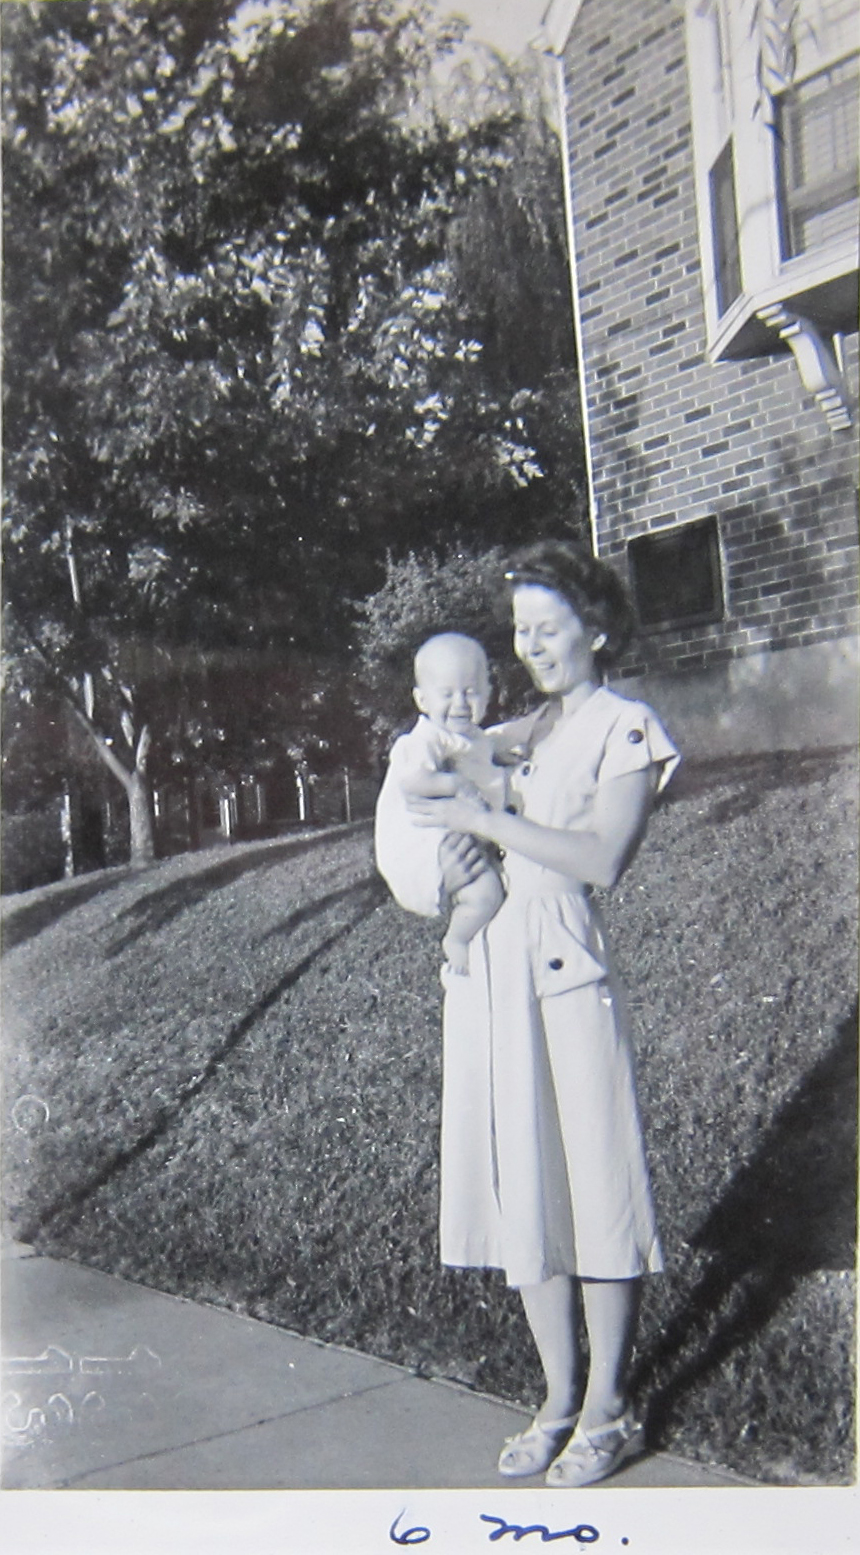 I believe this photograph was taken in front of the duplex or multi-family home where Bob and Marjorie lived after they married.